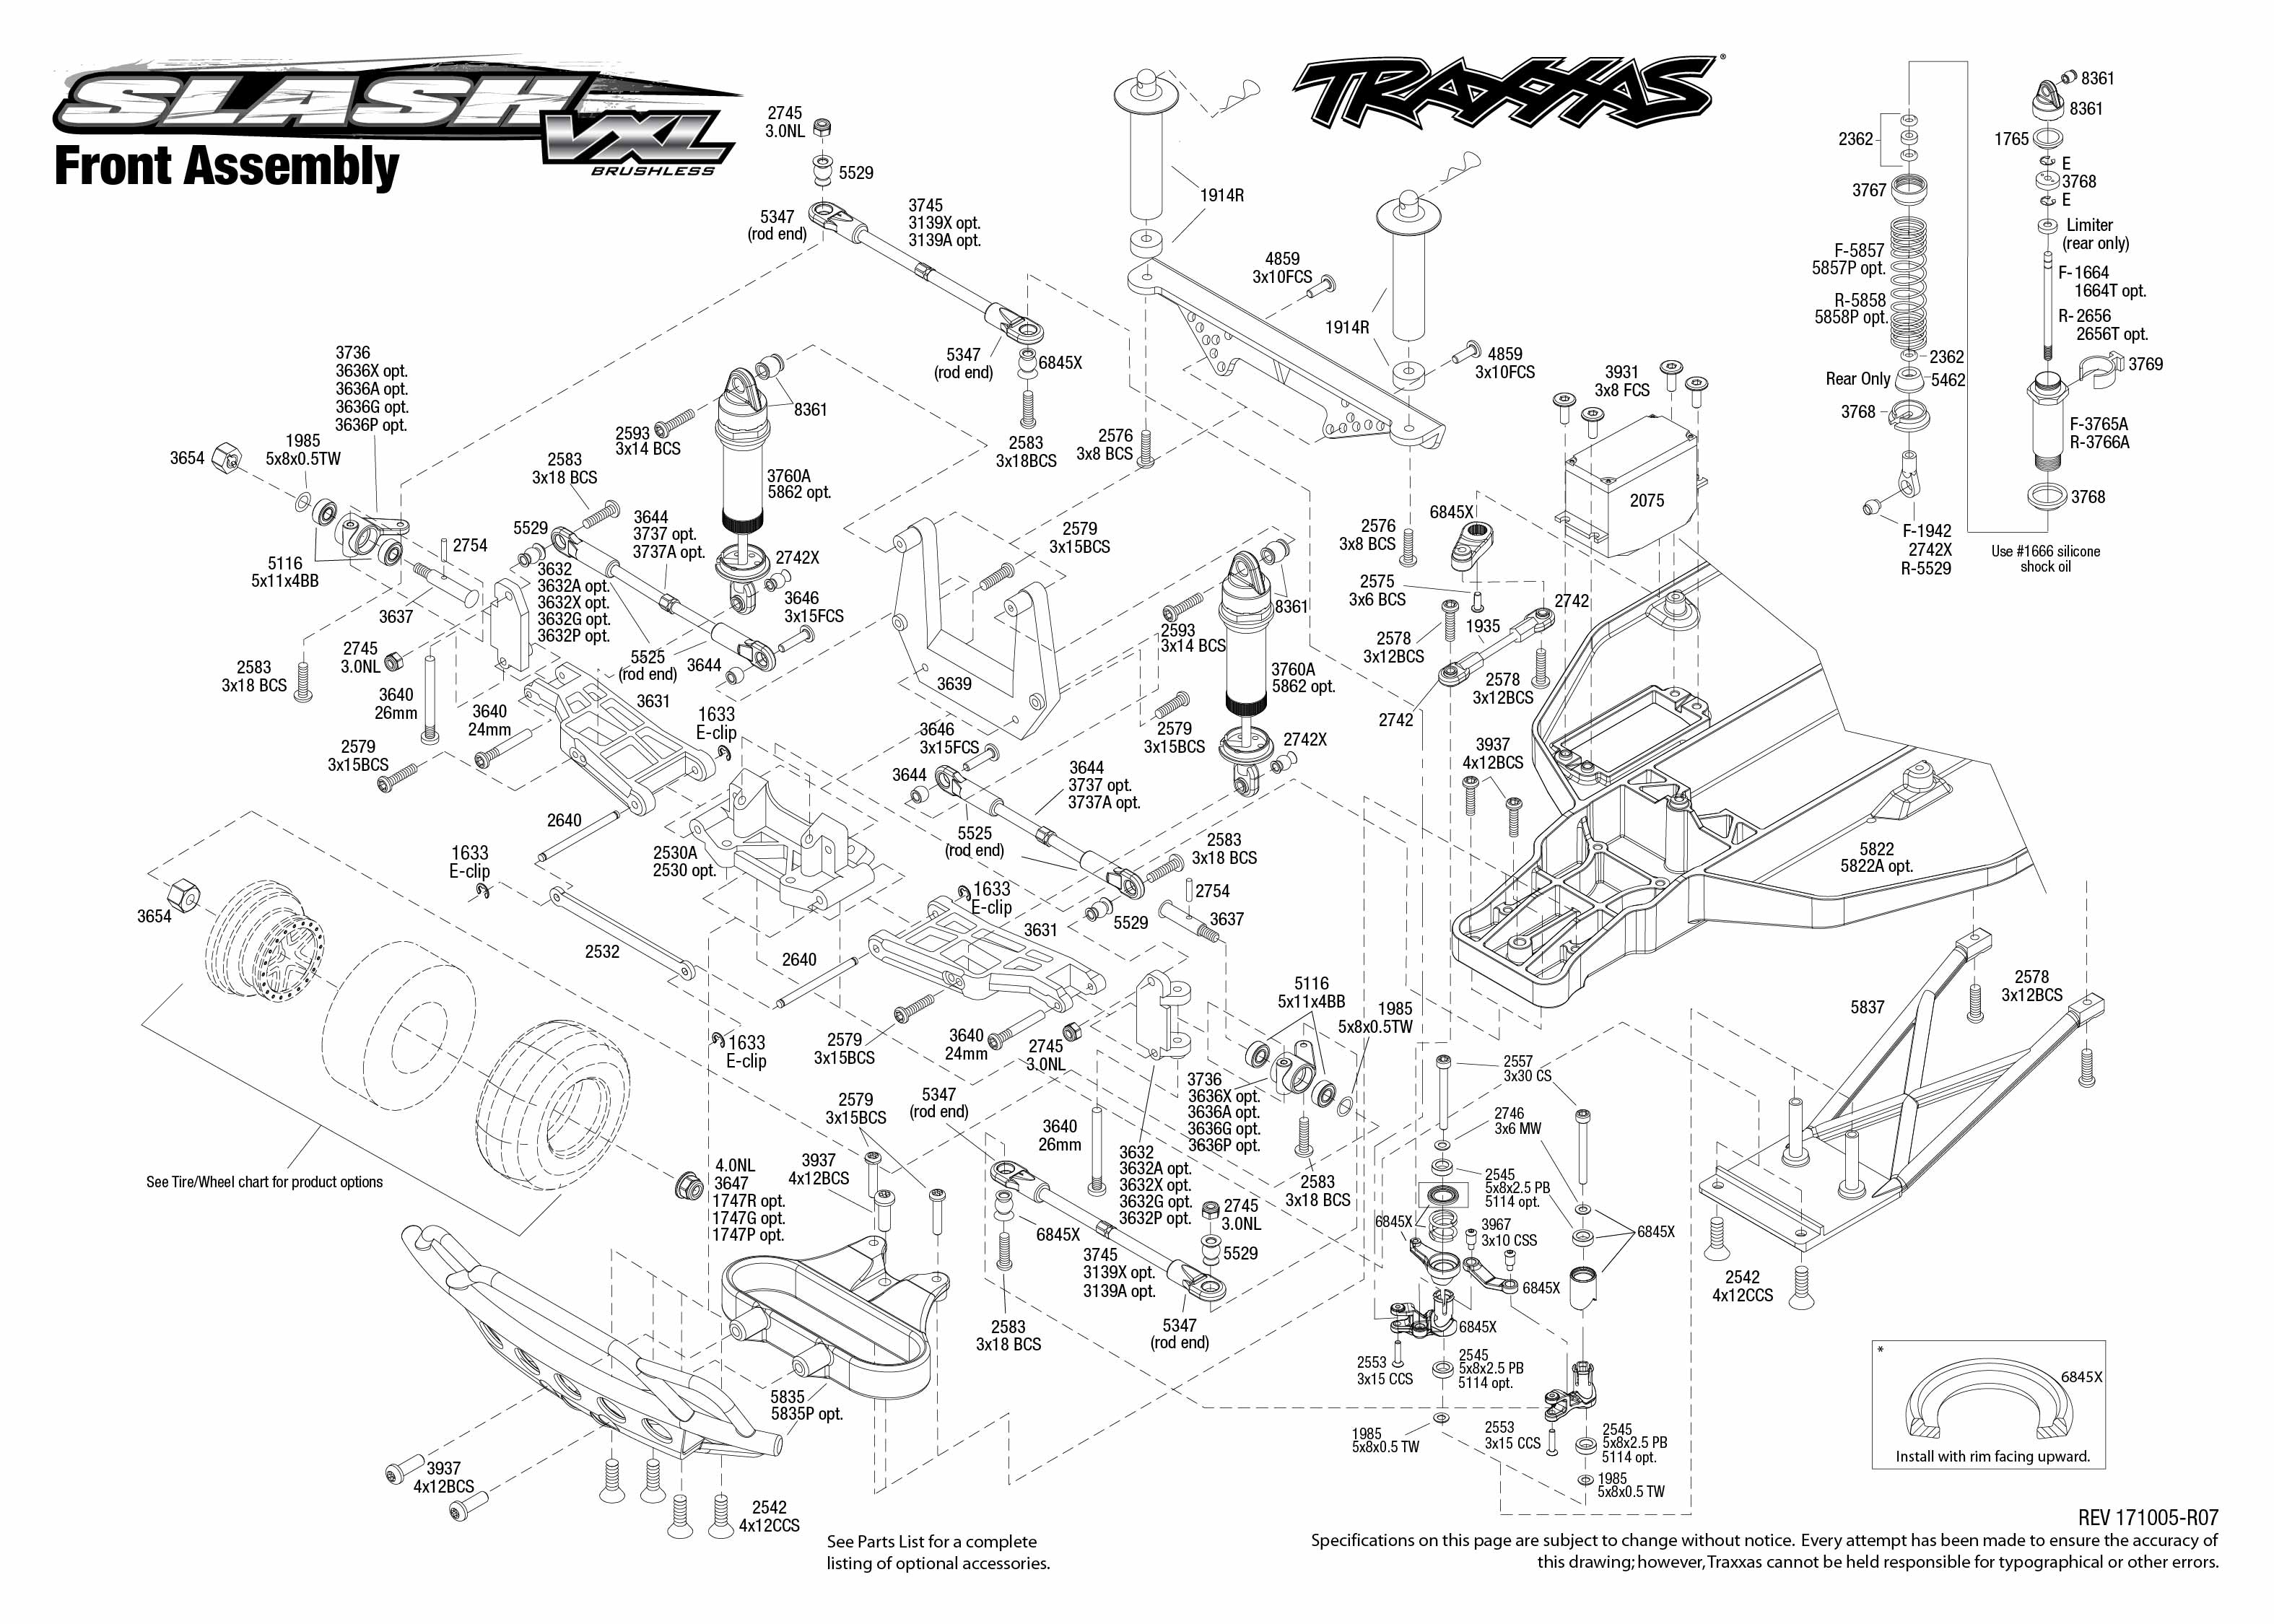 [SCHEMATICS_48IS]  DIAGRAM] Traxxas Slash 4x4 Wiring Diagram FULL Version HD Quality Wiring  Diagram - VENNDIAGRAMONLINE.NUITDEBOUTAIX.FR | Slash Wire Diagram |  | venndiagramonline.nuitdeboutaix.fr